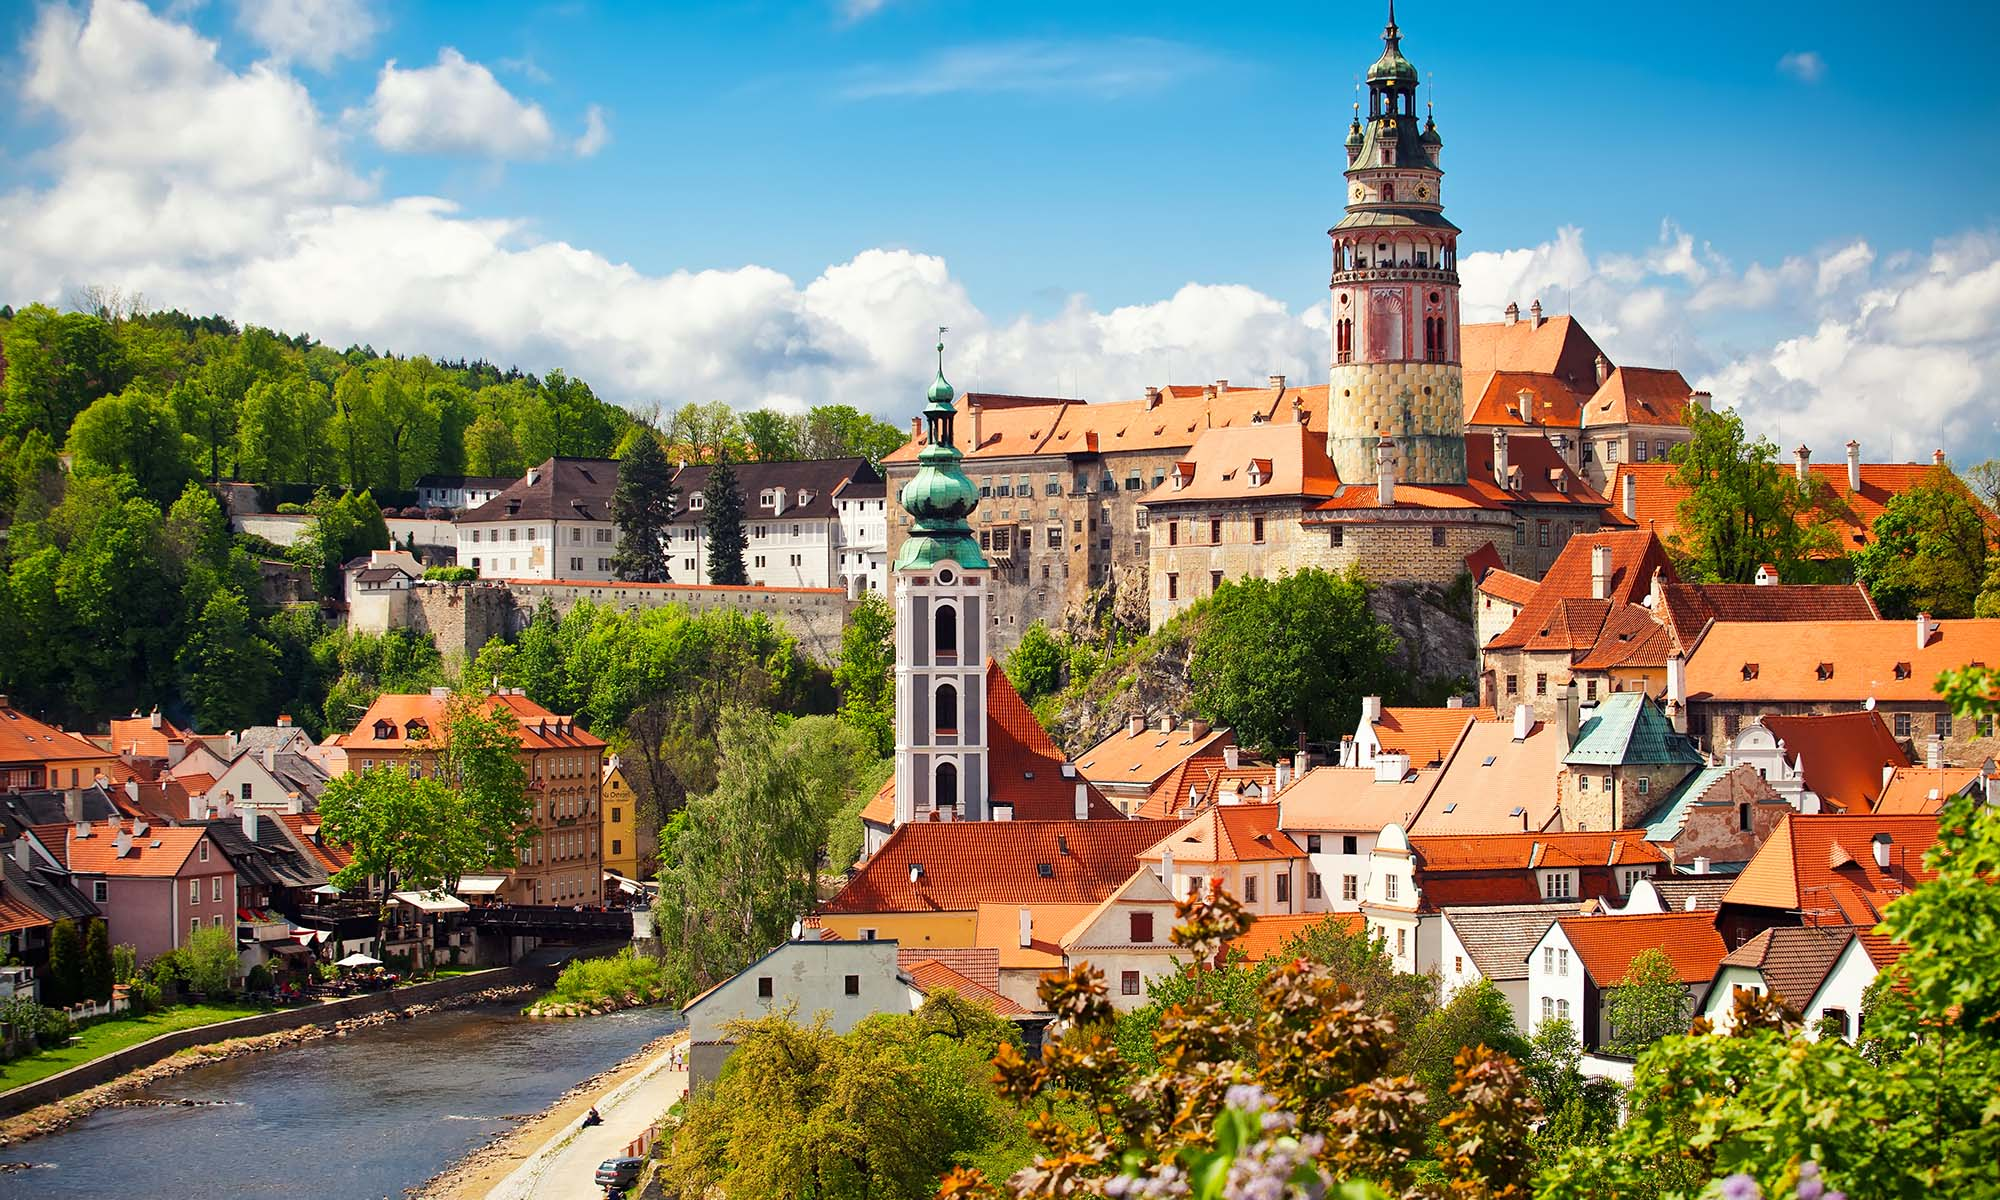 car hire rentals Czech Republic orange roof town